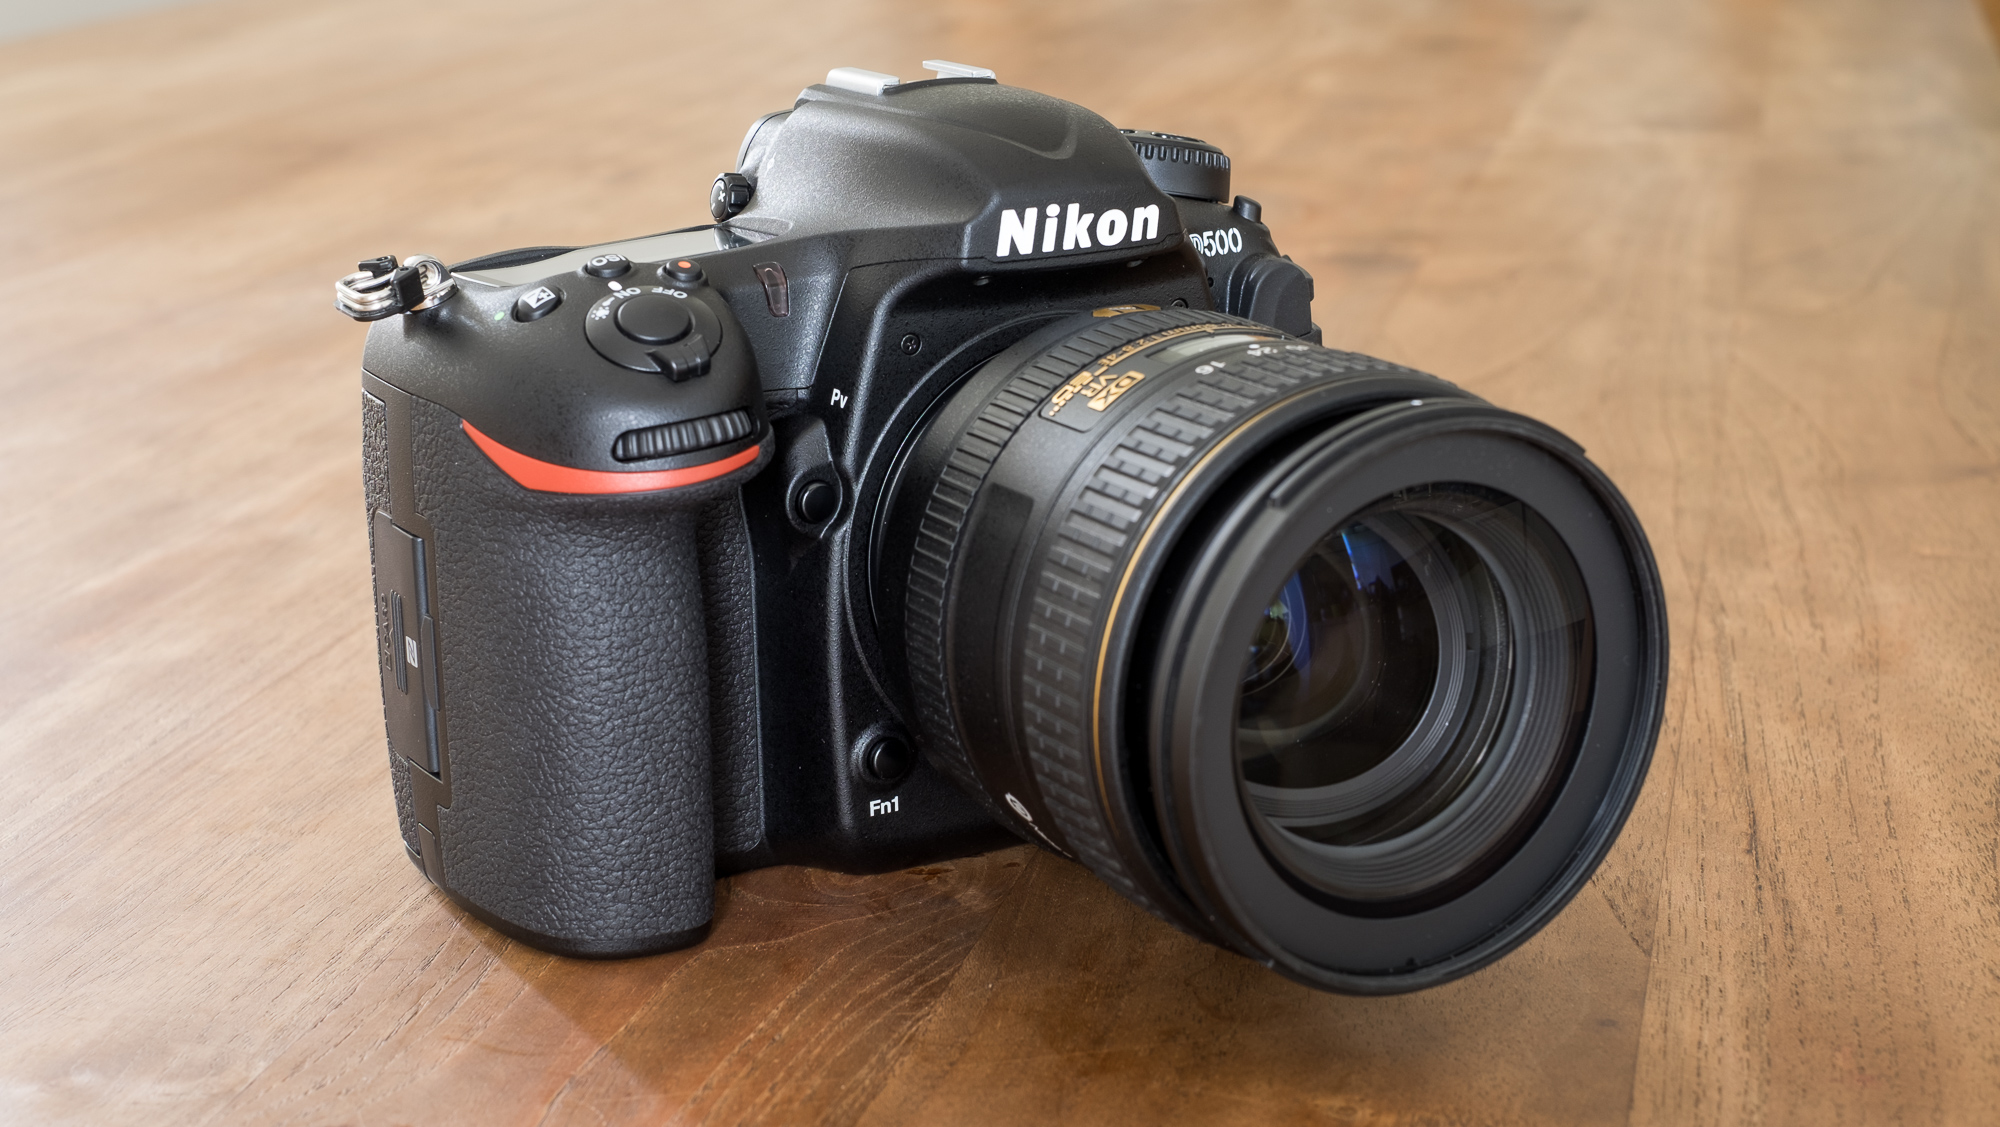 The Nikon D500 costs more than some full-frame SLRs but this cropped-sensor model is fast feature-packed and ready for action. Its 153-point autofocus ... & Best DSLR: The best budget mid-range and full-frame DSLRs to buy ... azcodes.com